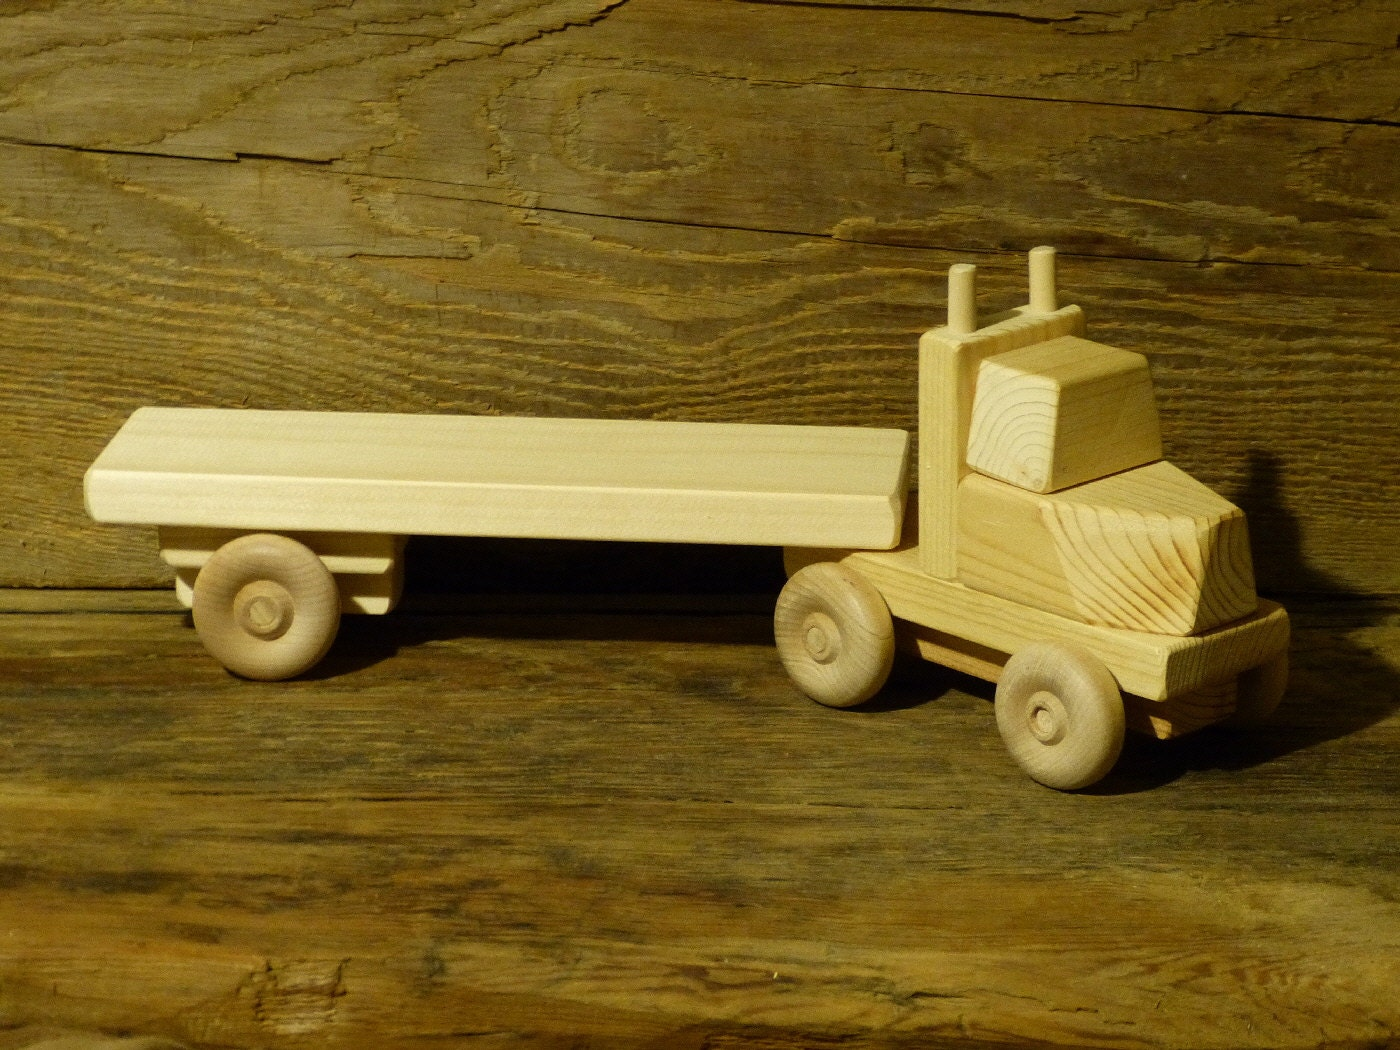 Wooden Toy Cars And Trucks : Handmade wooden toy truck flatbed trailer green ecofriendly